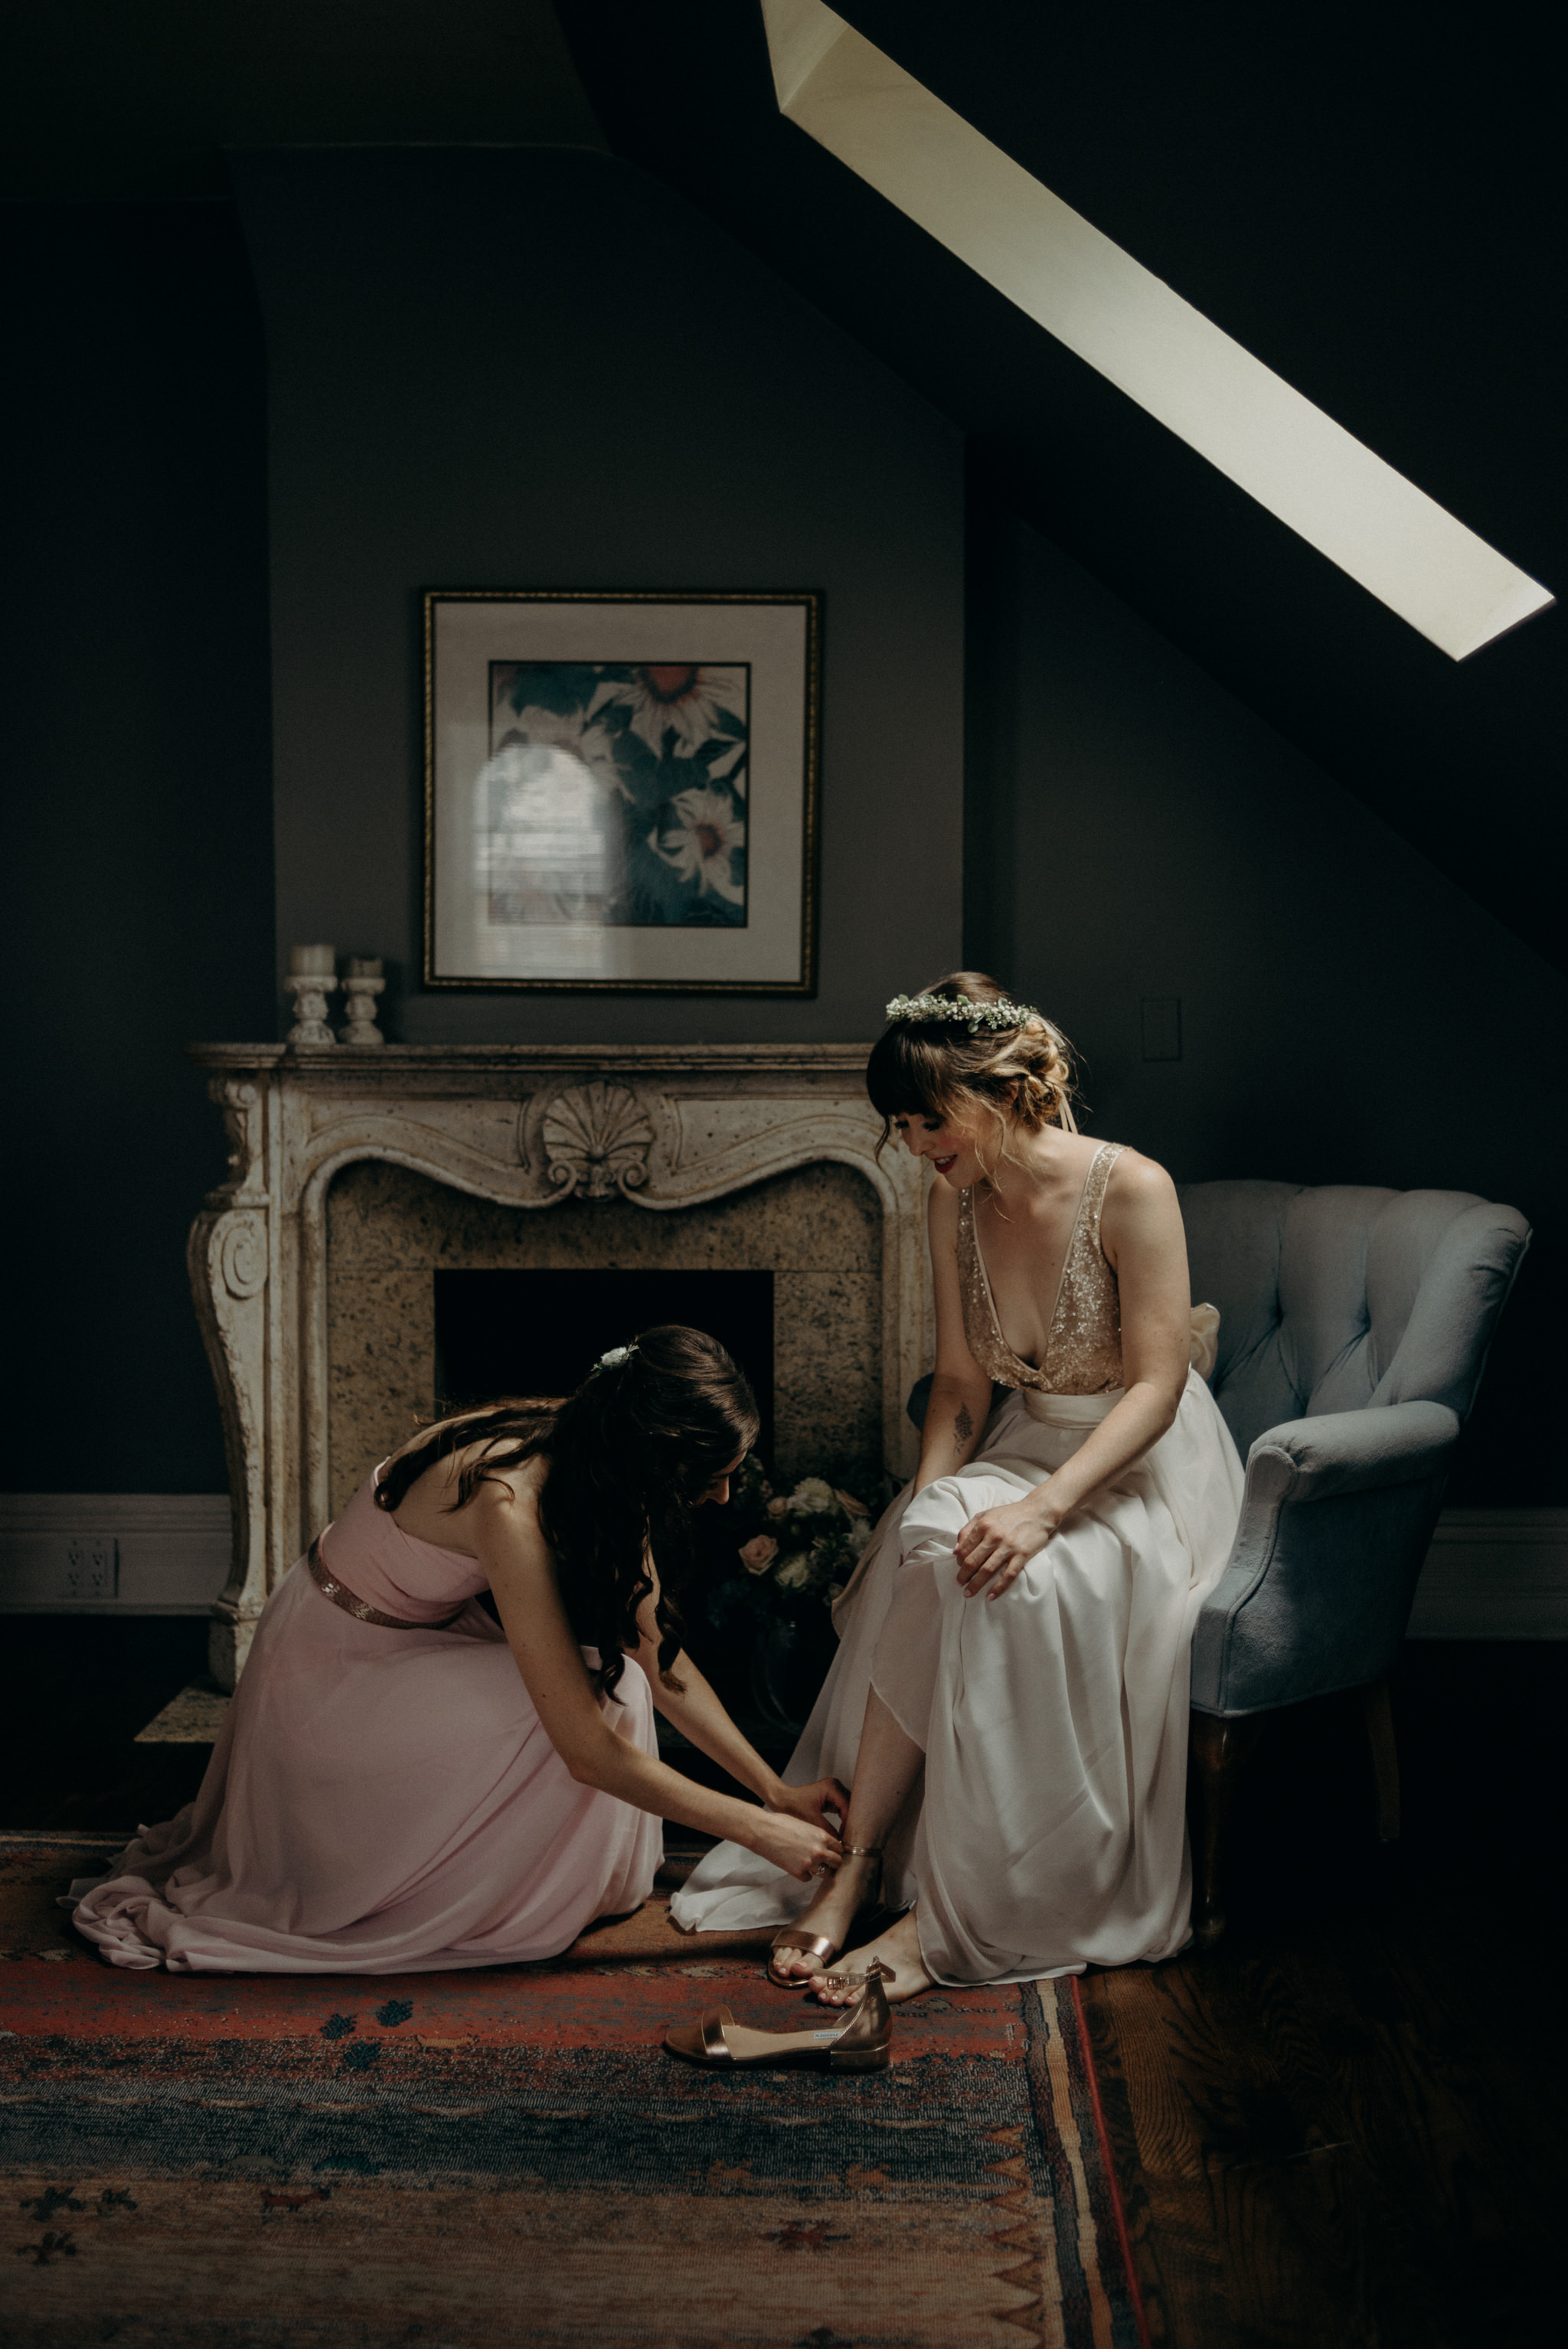 bridesmaid helping bride into shoes as she sits on chair